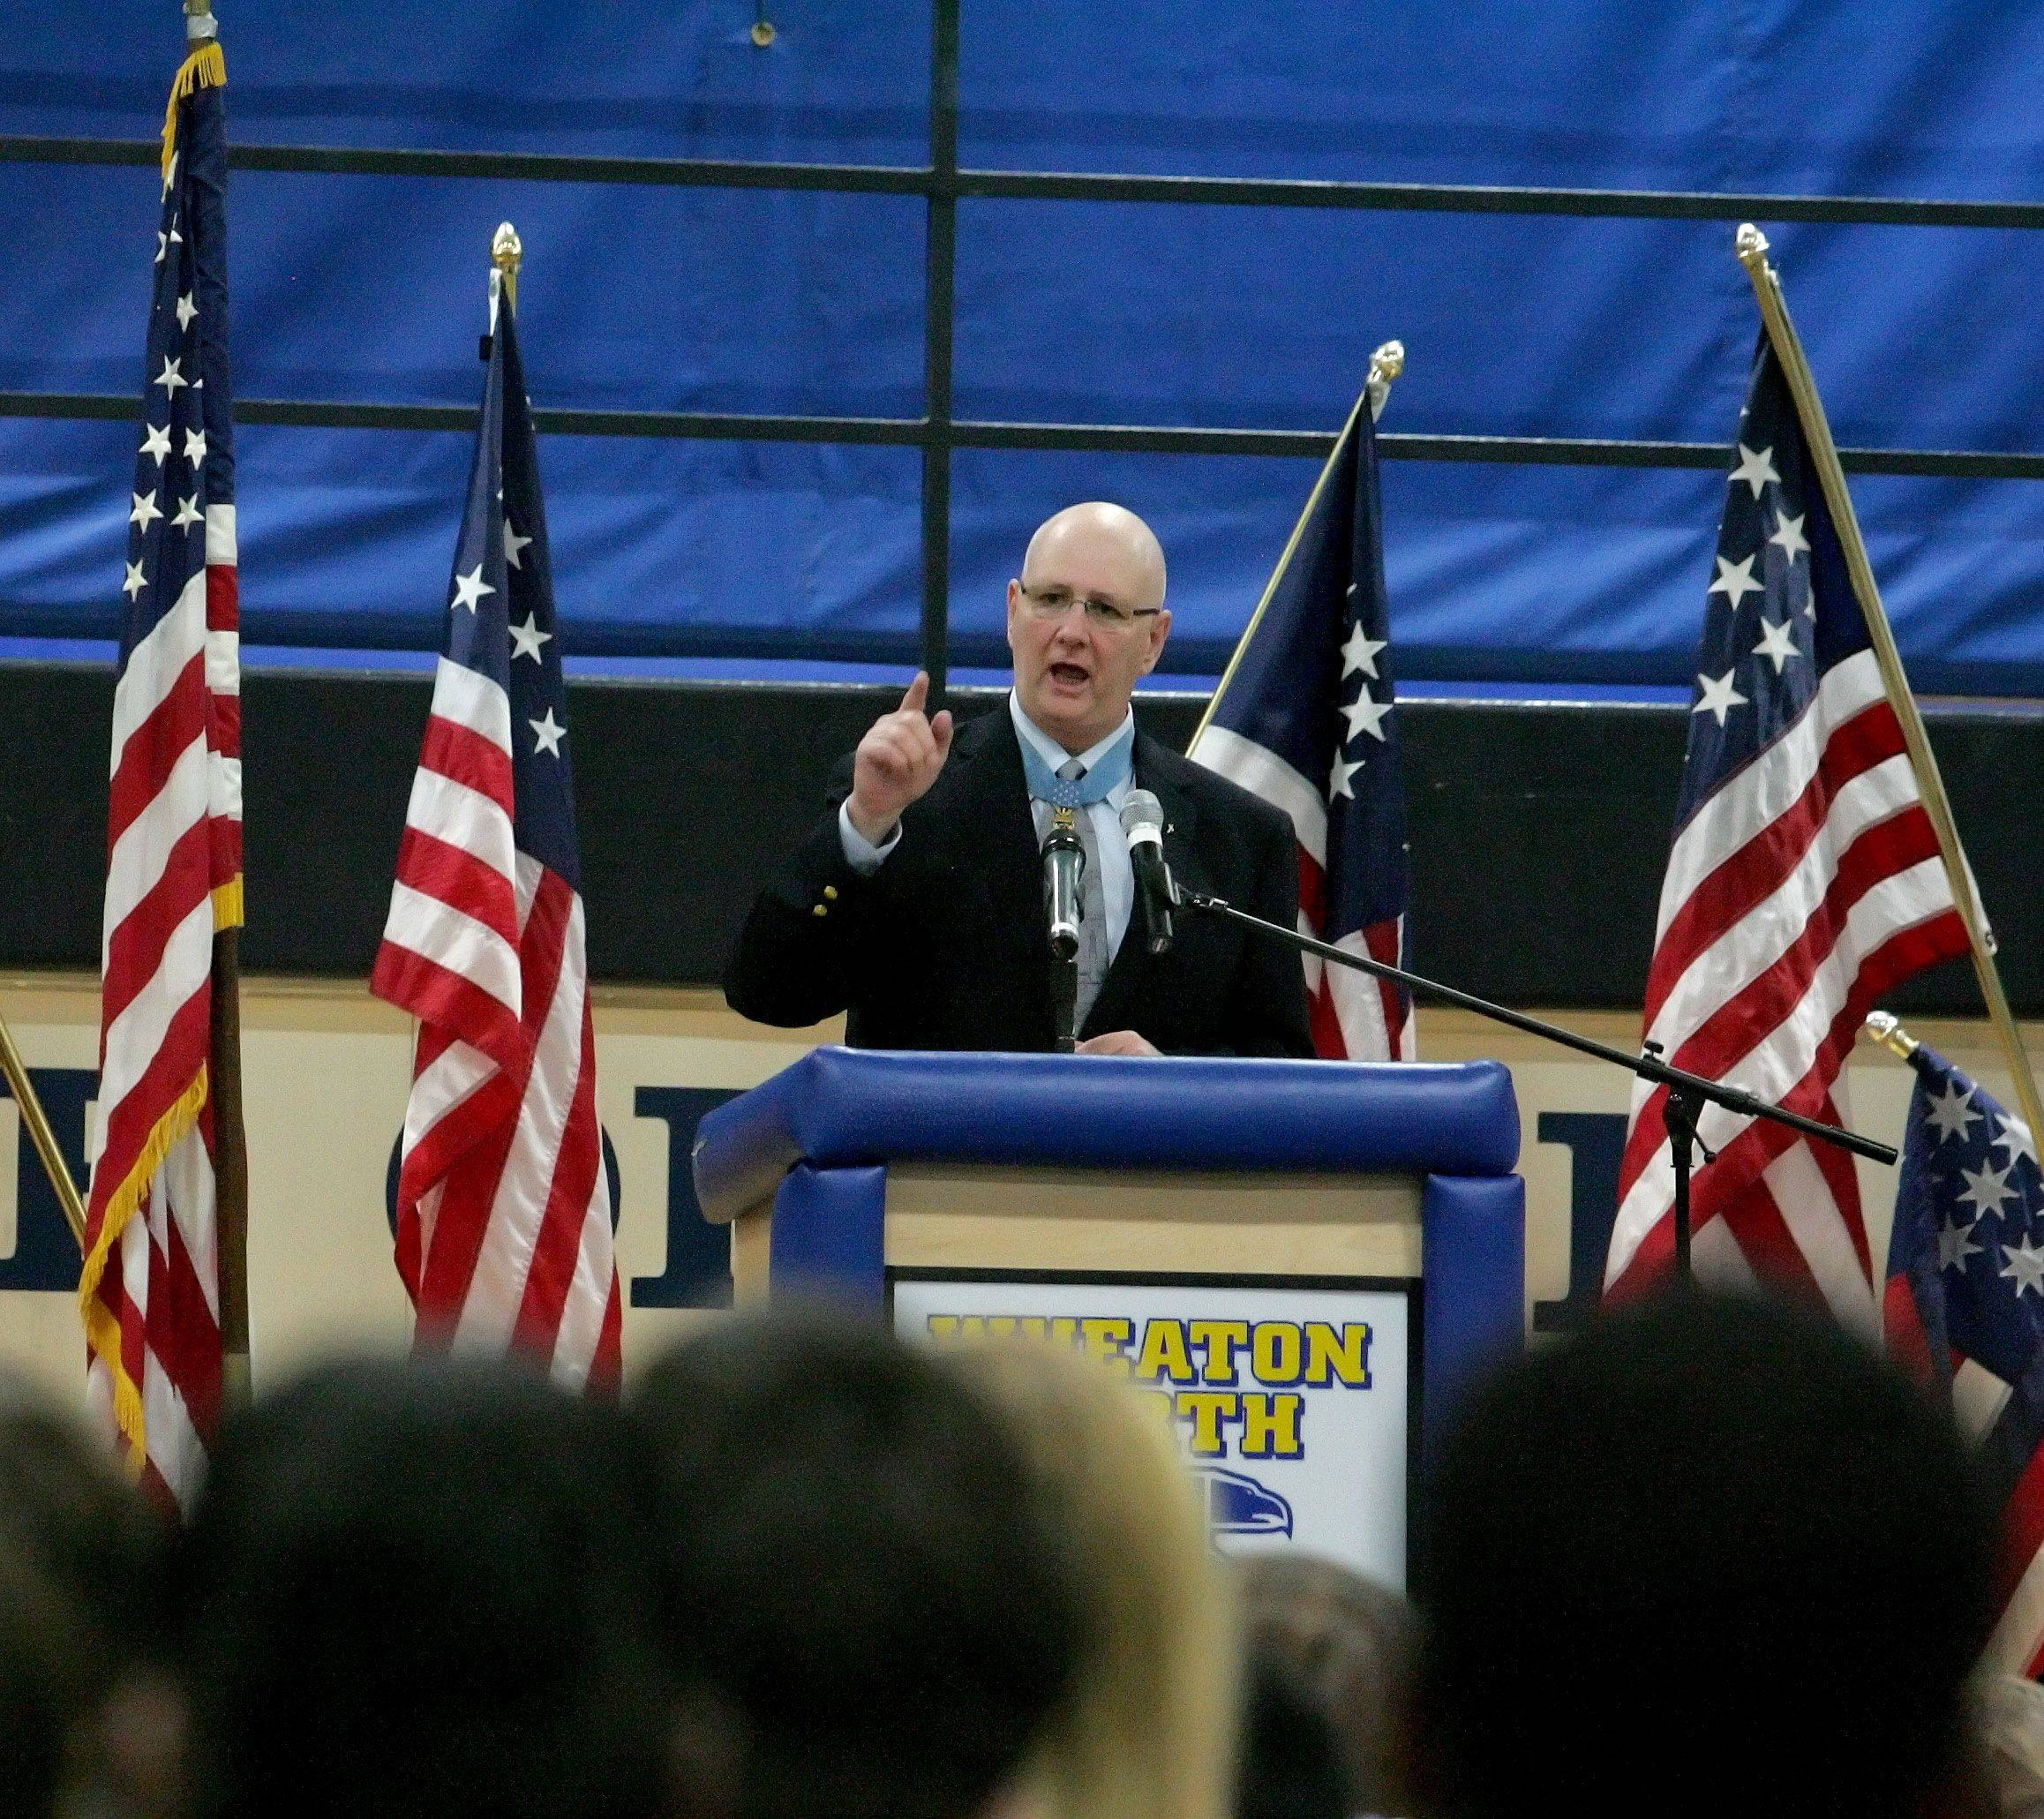 Medal of Honor recipient Allen Lynch speaks at a Veterans Day event honoring Medal of Honor recipient Staff Sgt. Rob Miller at Wheaton North High School.